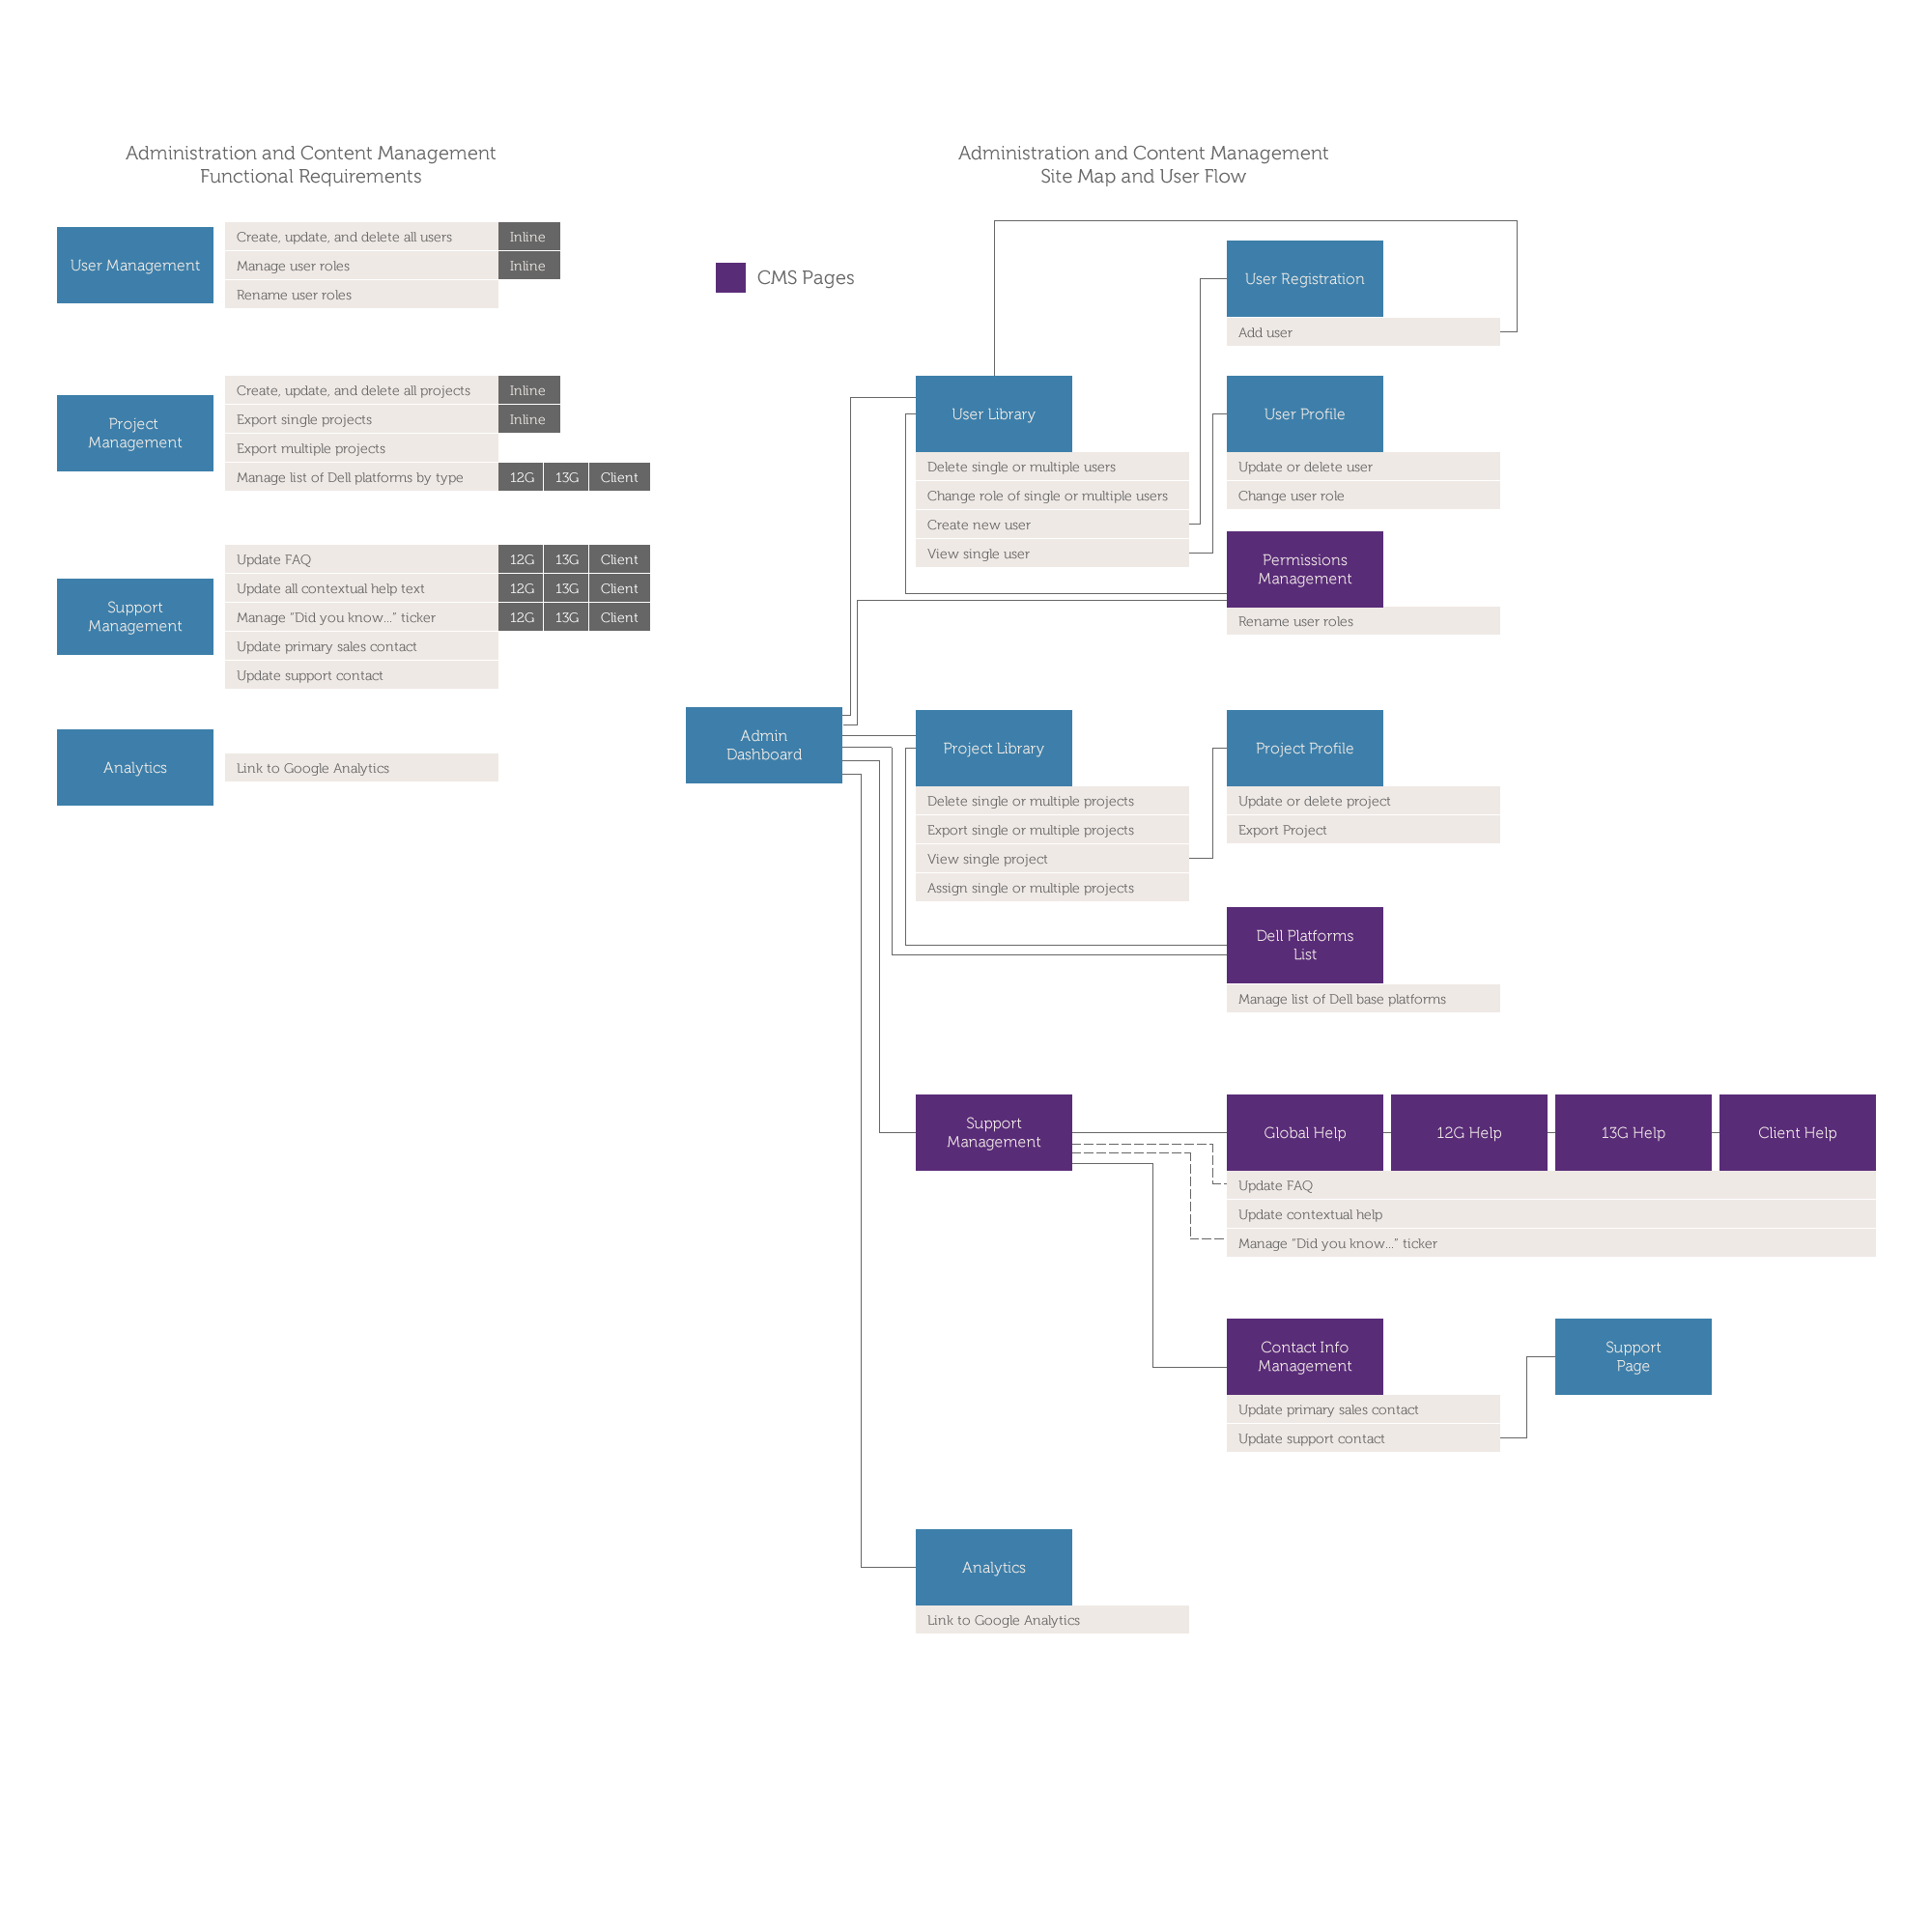 dell1062_CMS_Sitemap.png